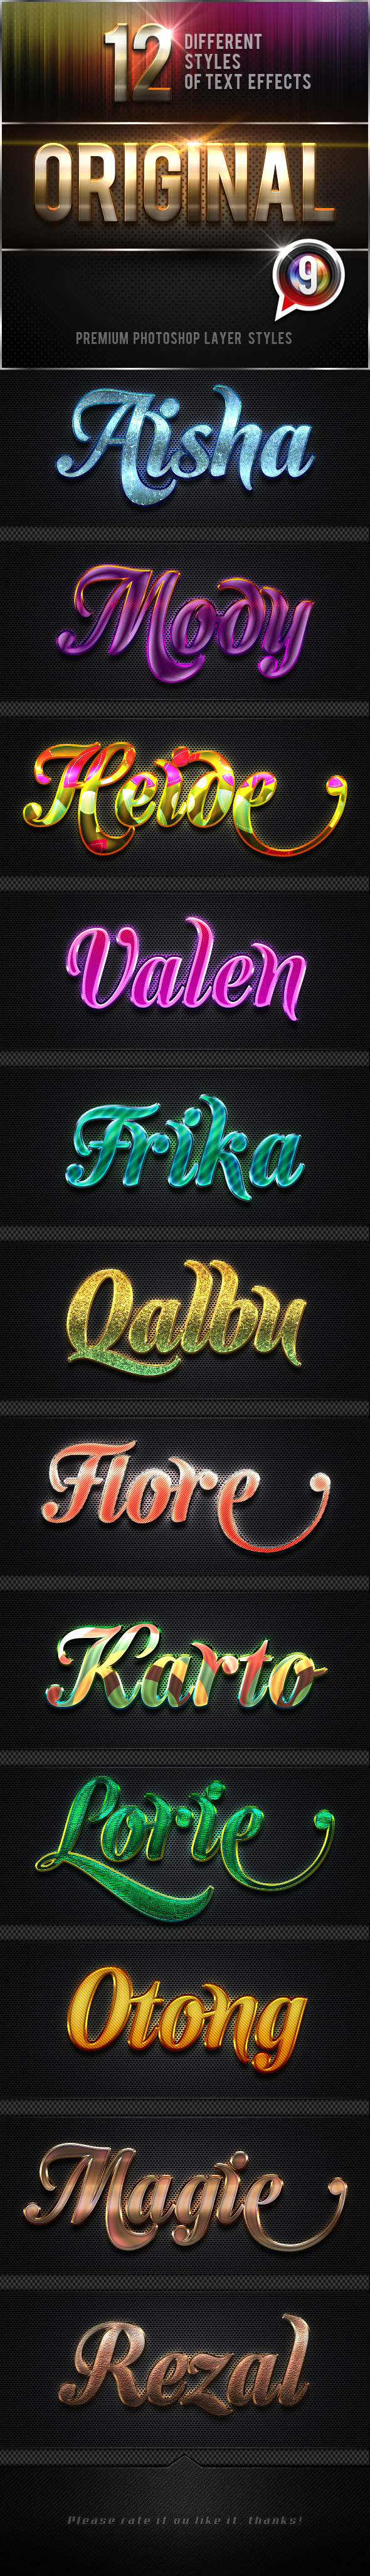 12 Original Photoshop Text Effects Vol.10 - Text Effects Styles